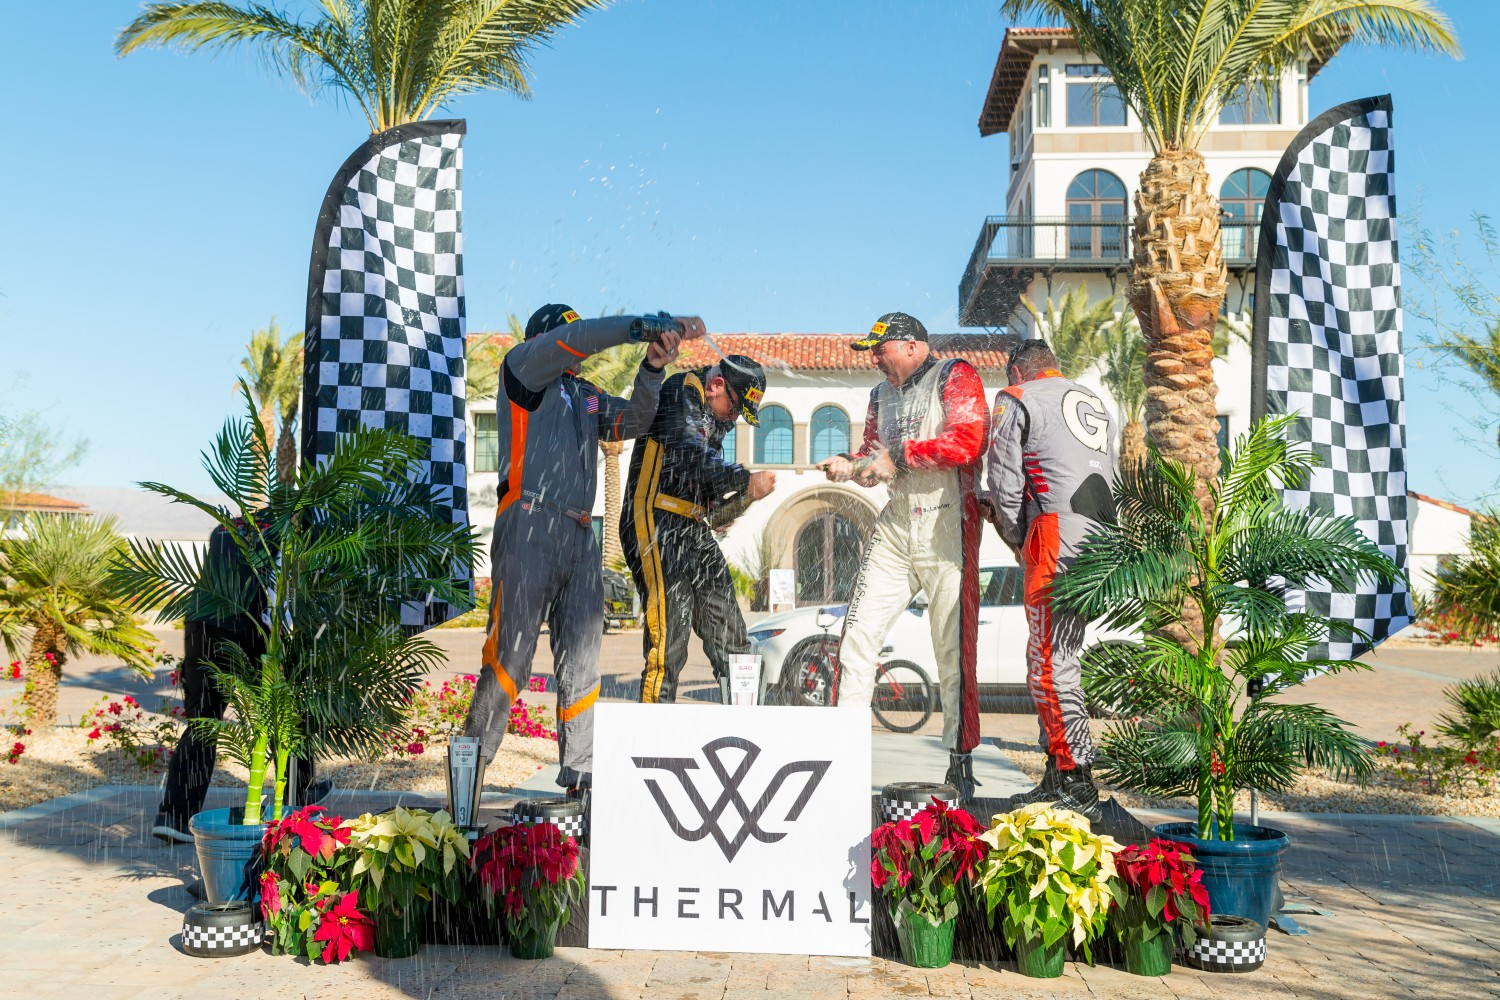 GT Sports Club and GT4 Run Groups - 2019 Winter Invitational at The Thermal Club, Dec. 13-15, 2020 - Thermal, Calif.